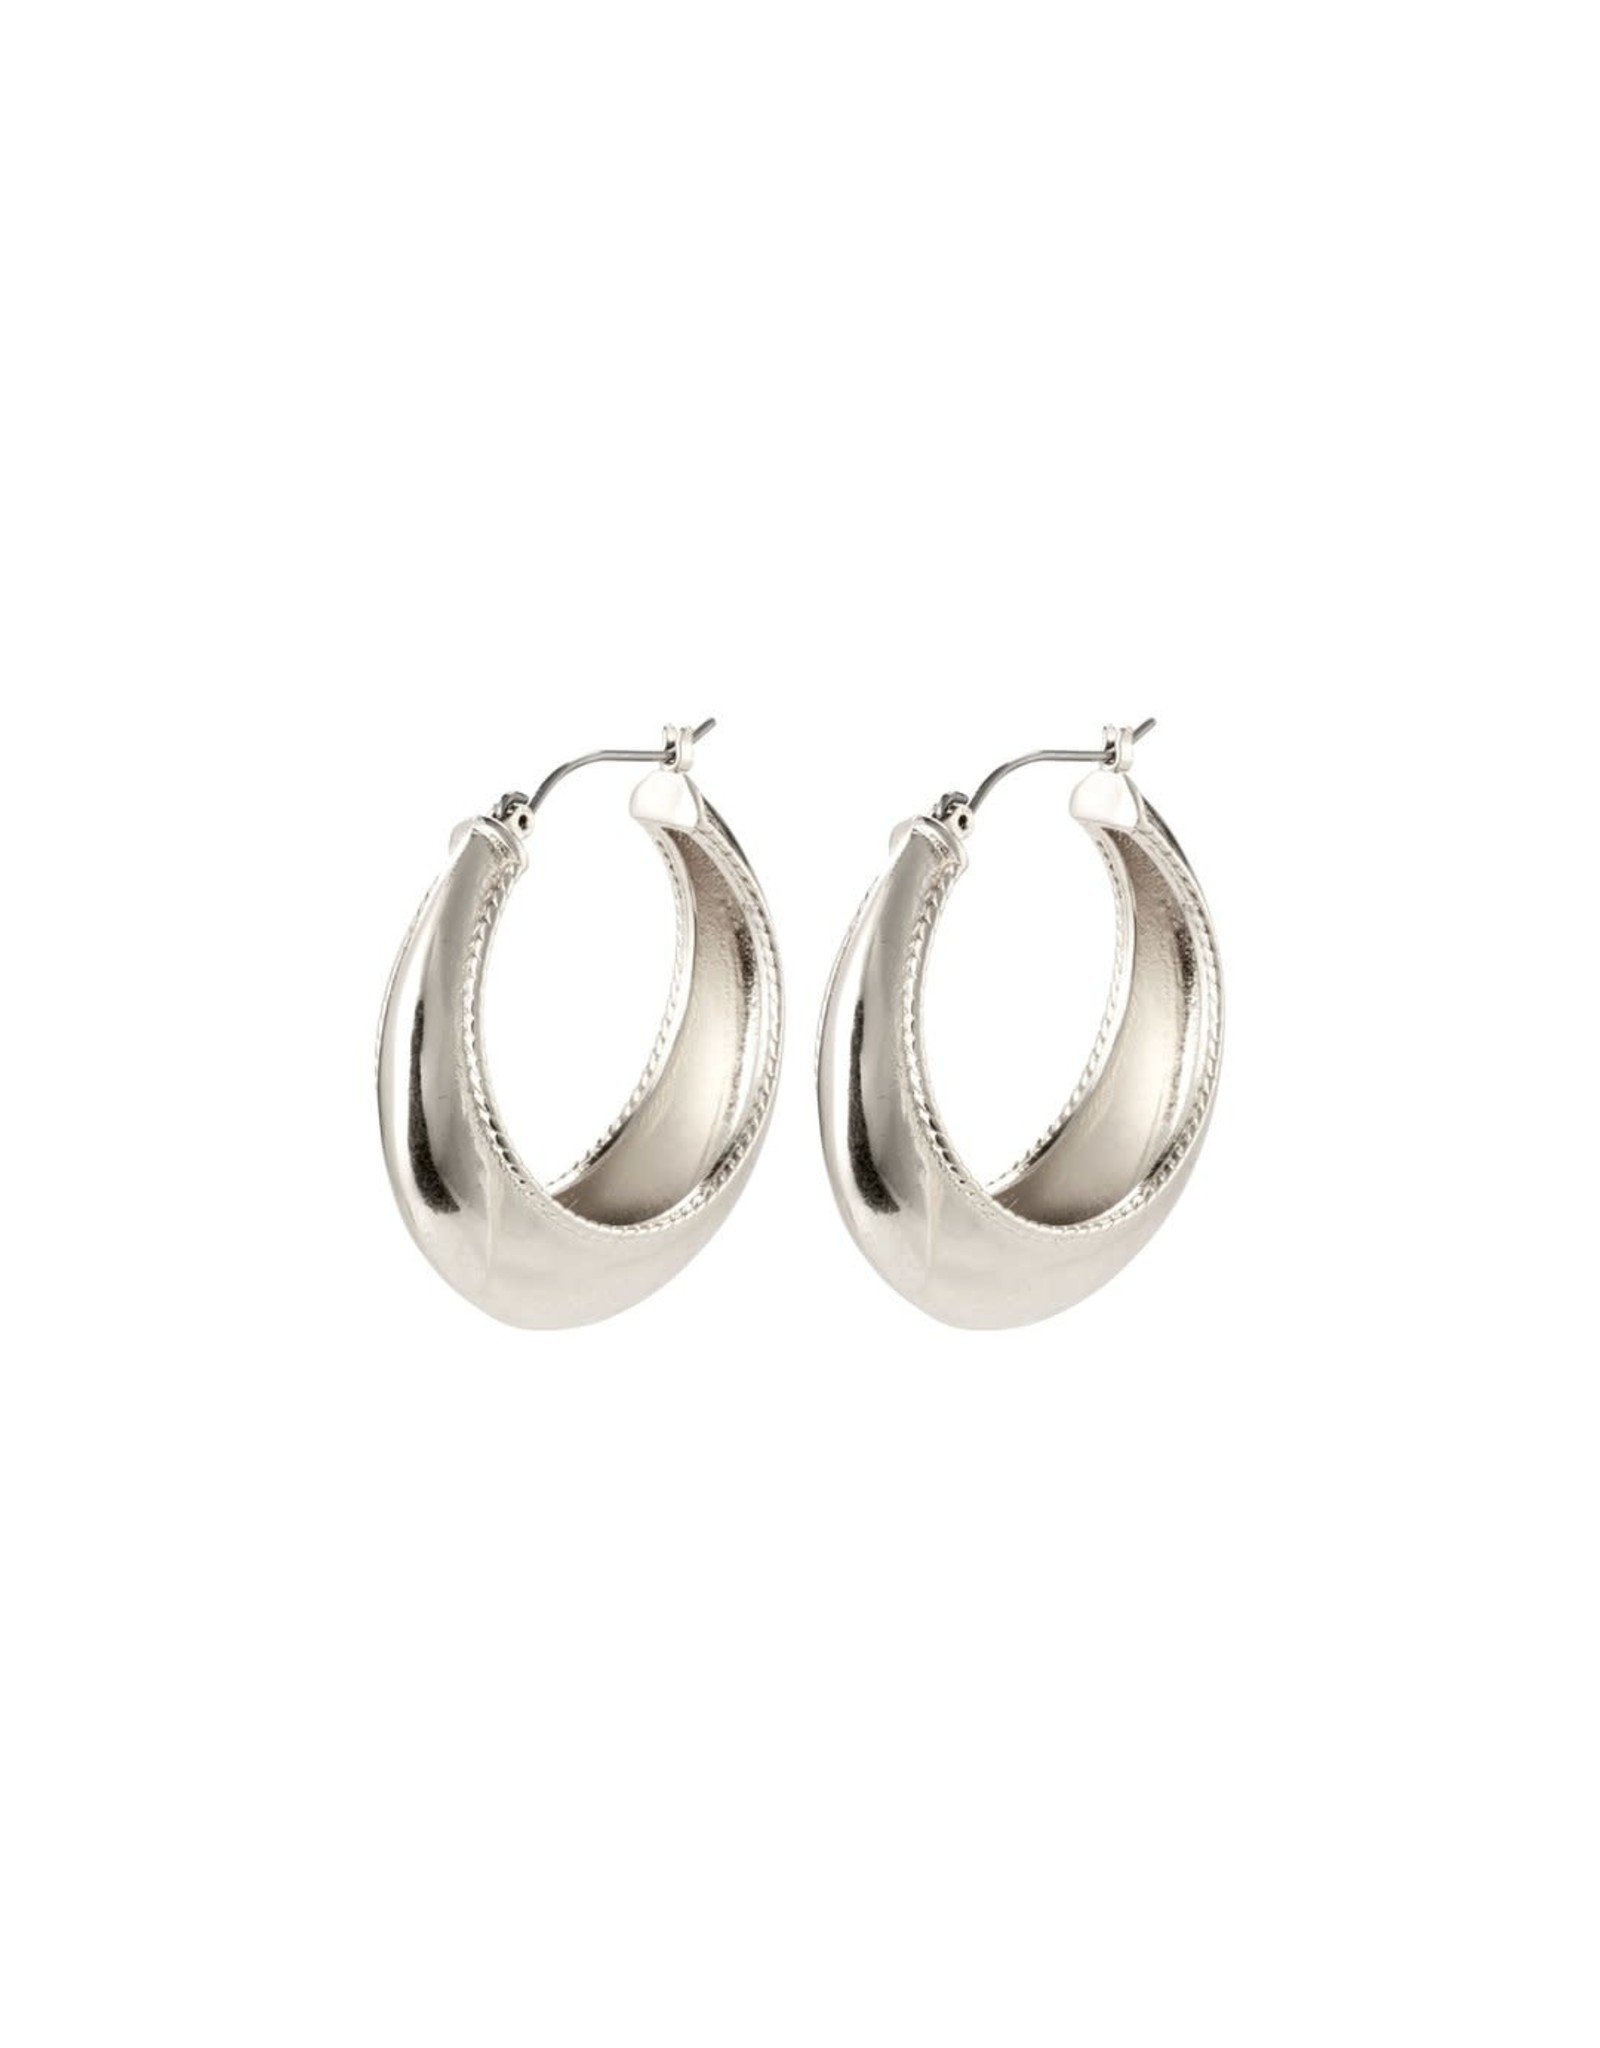 Pilgrim Pilgrim Earrings Silver Basket Hoops